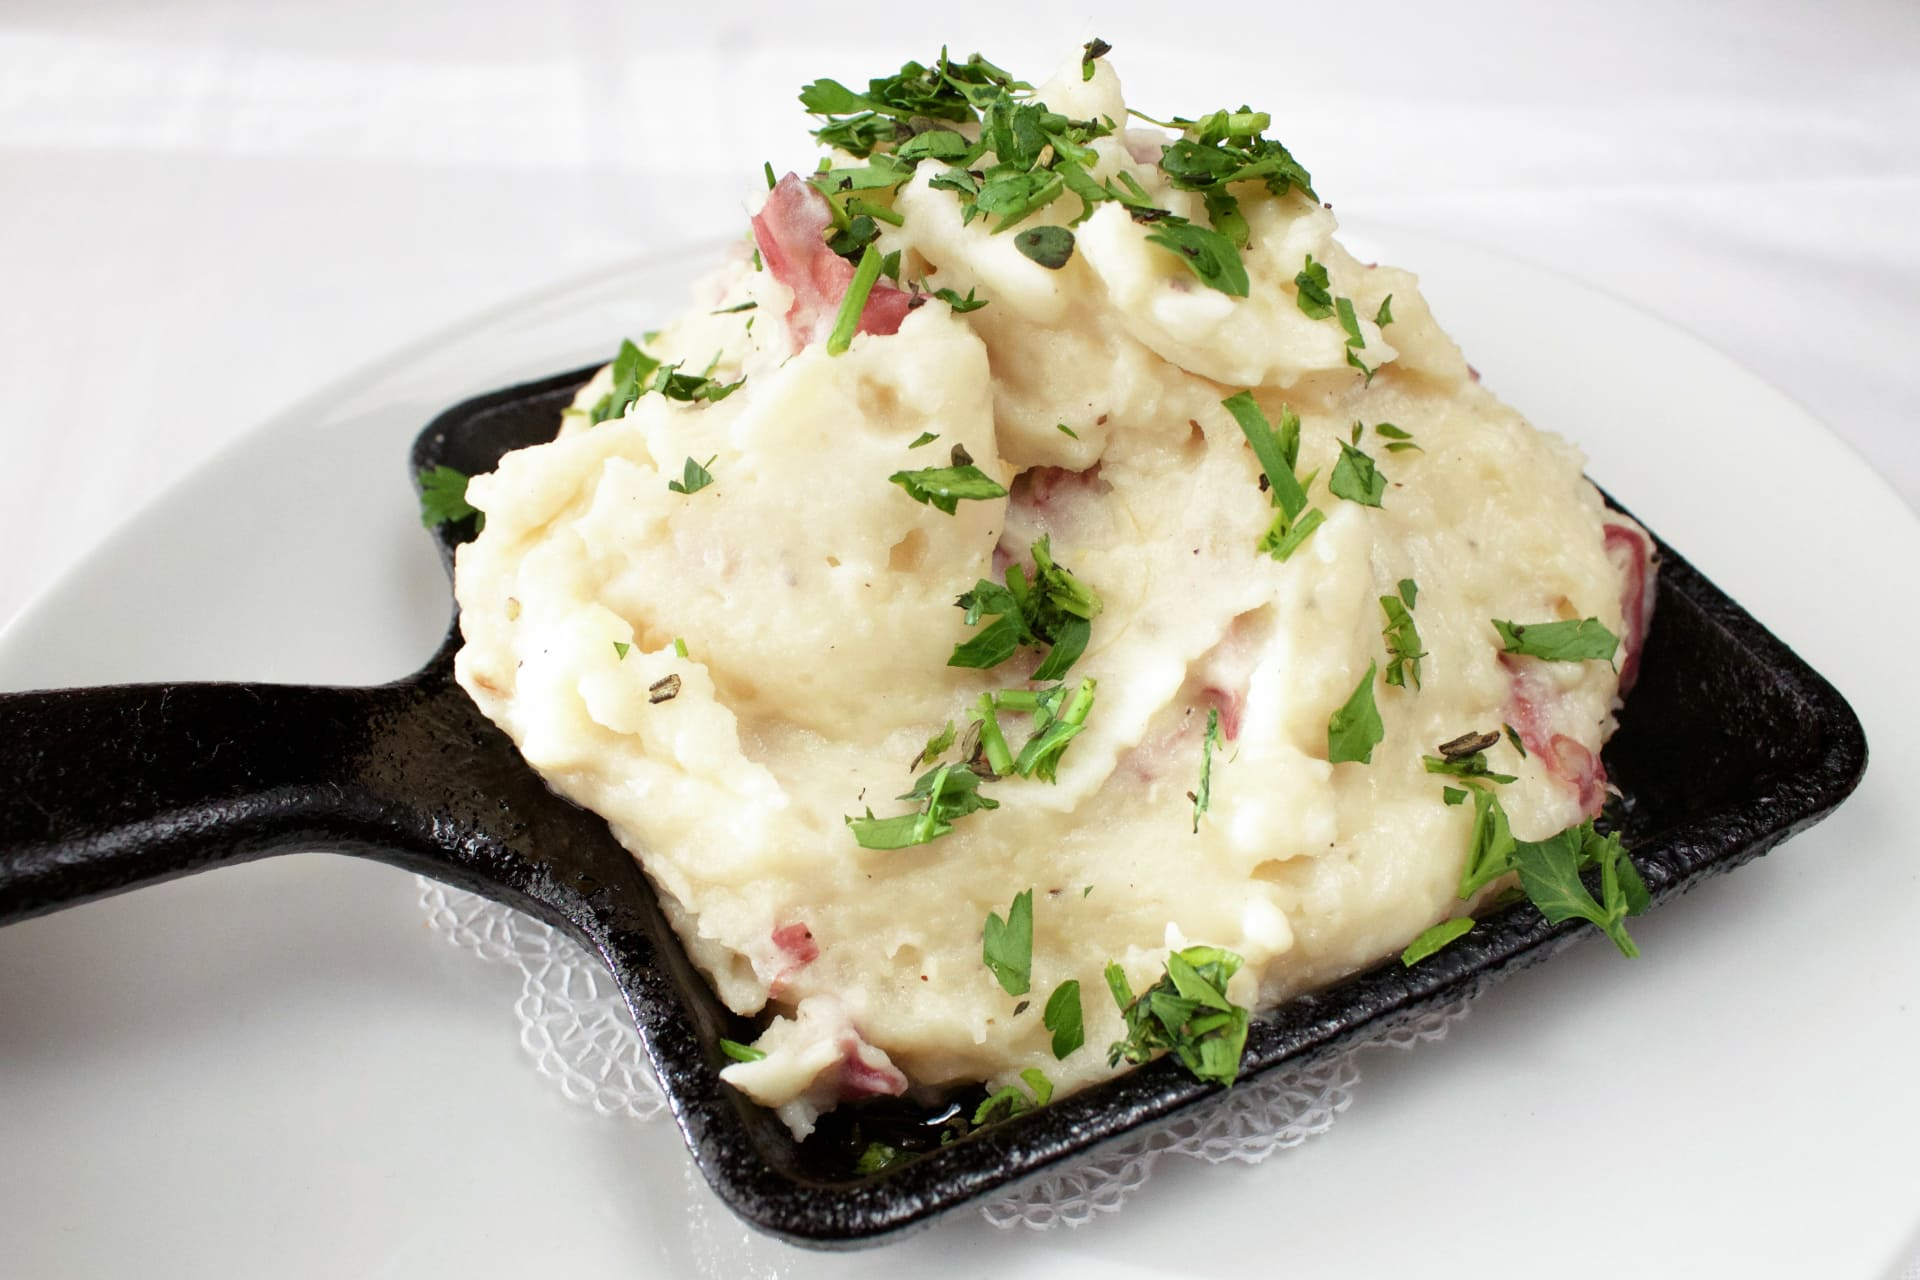 Melted Garlic & Crème Fraiche Mashed Potatoes